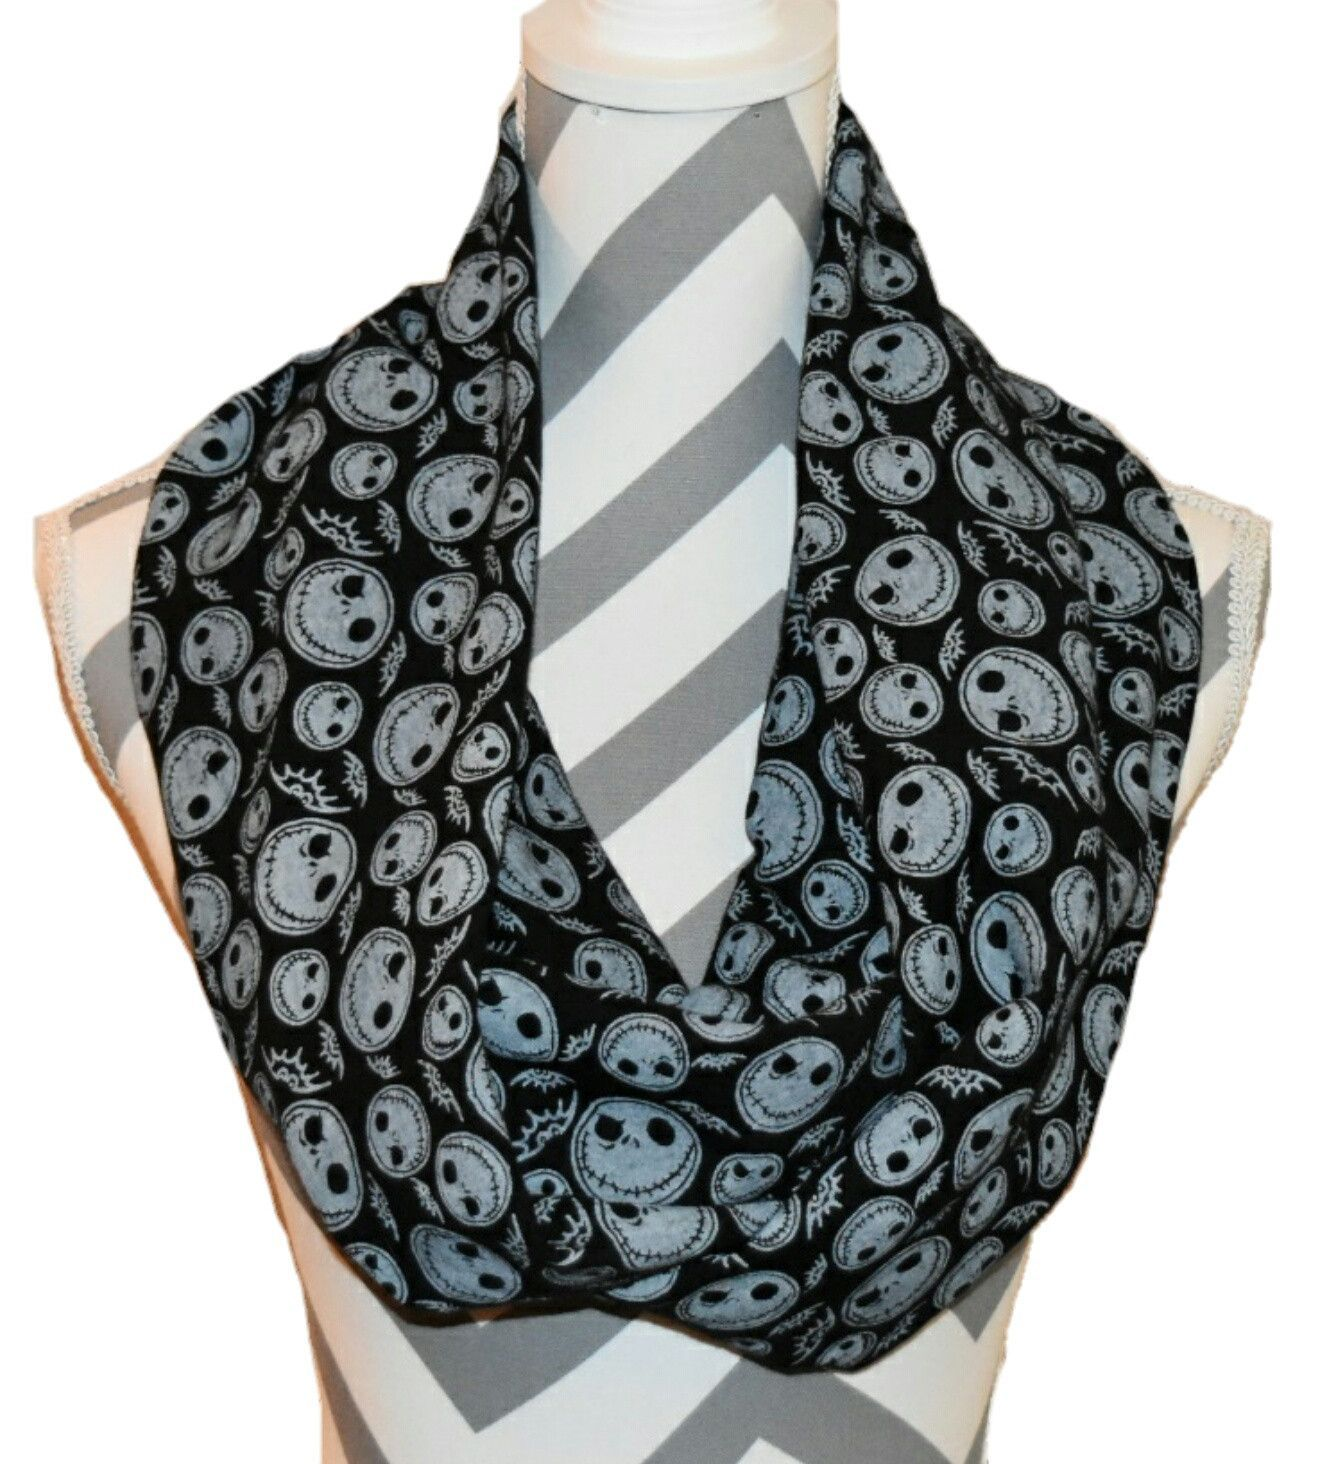 Nightmare Before Christmas | Scarves and Products